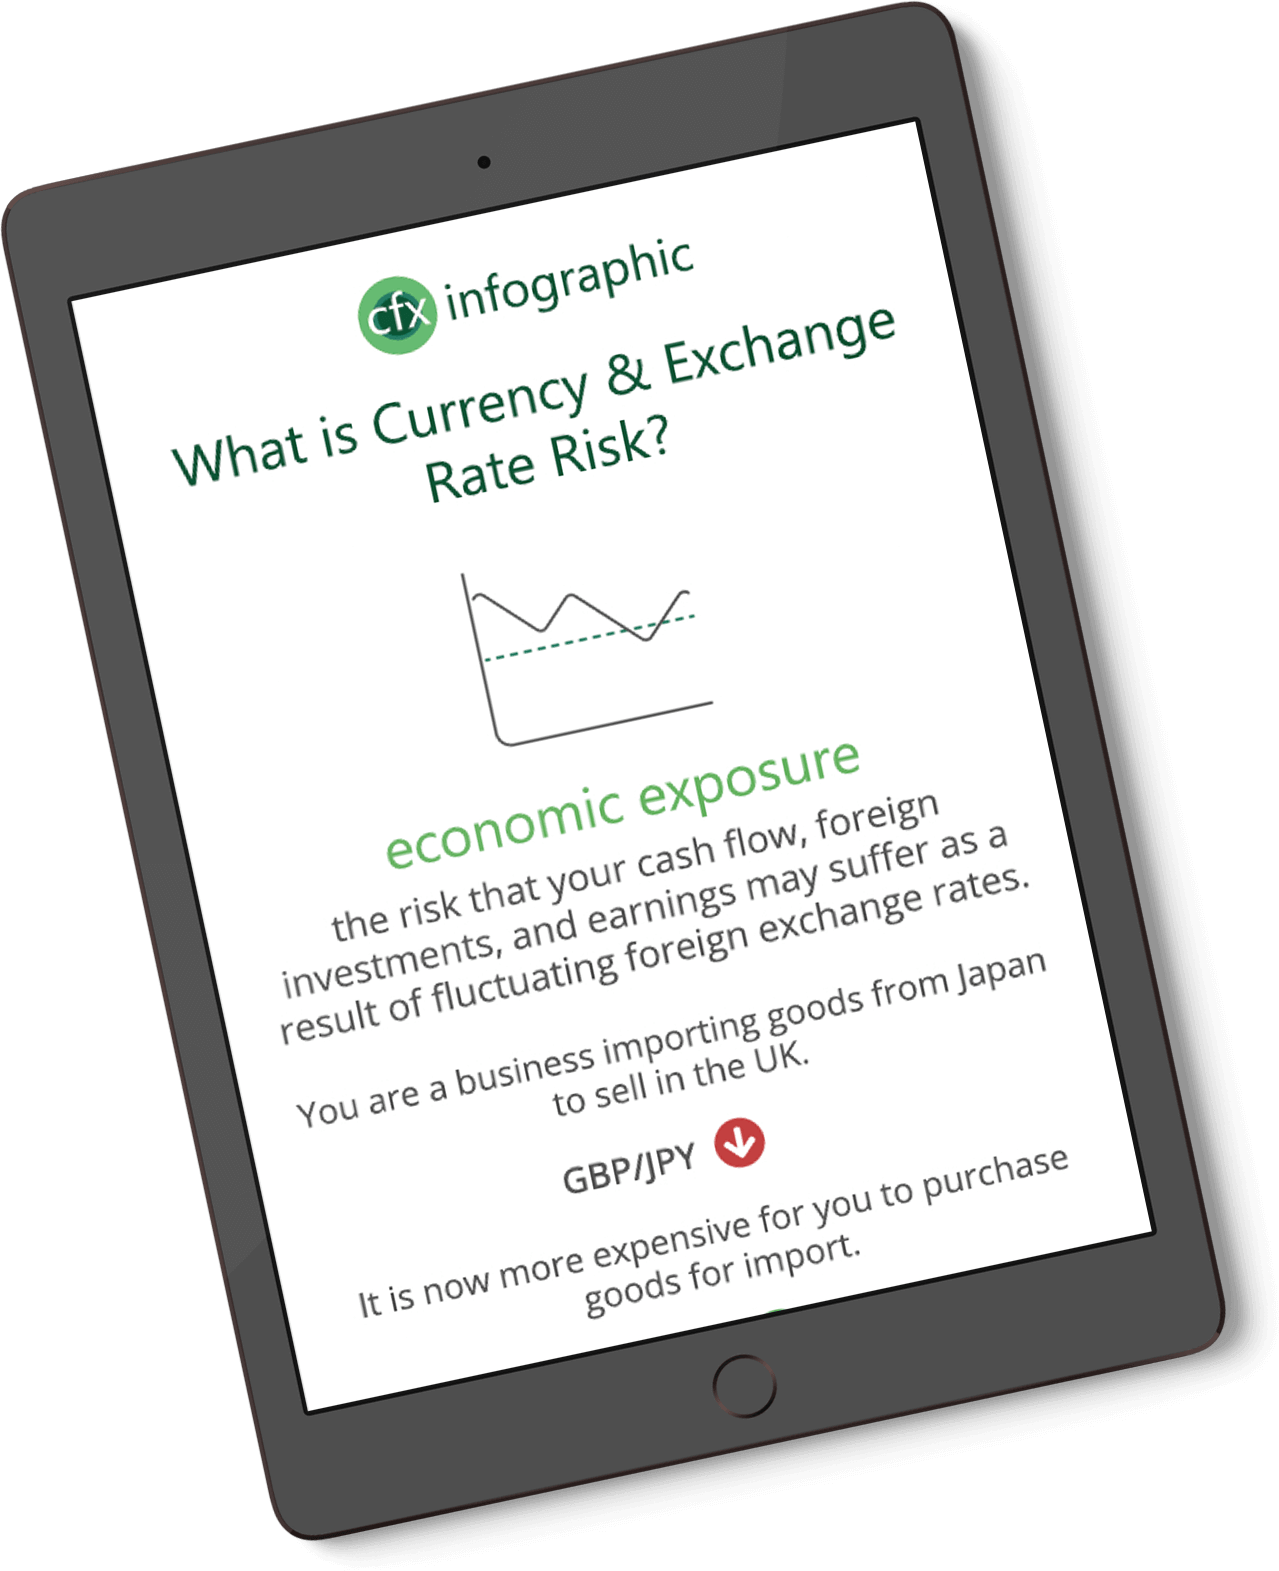 Preview of What is Currency & Exchange Risk Infographic